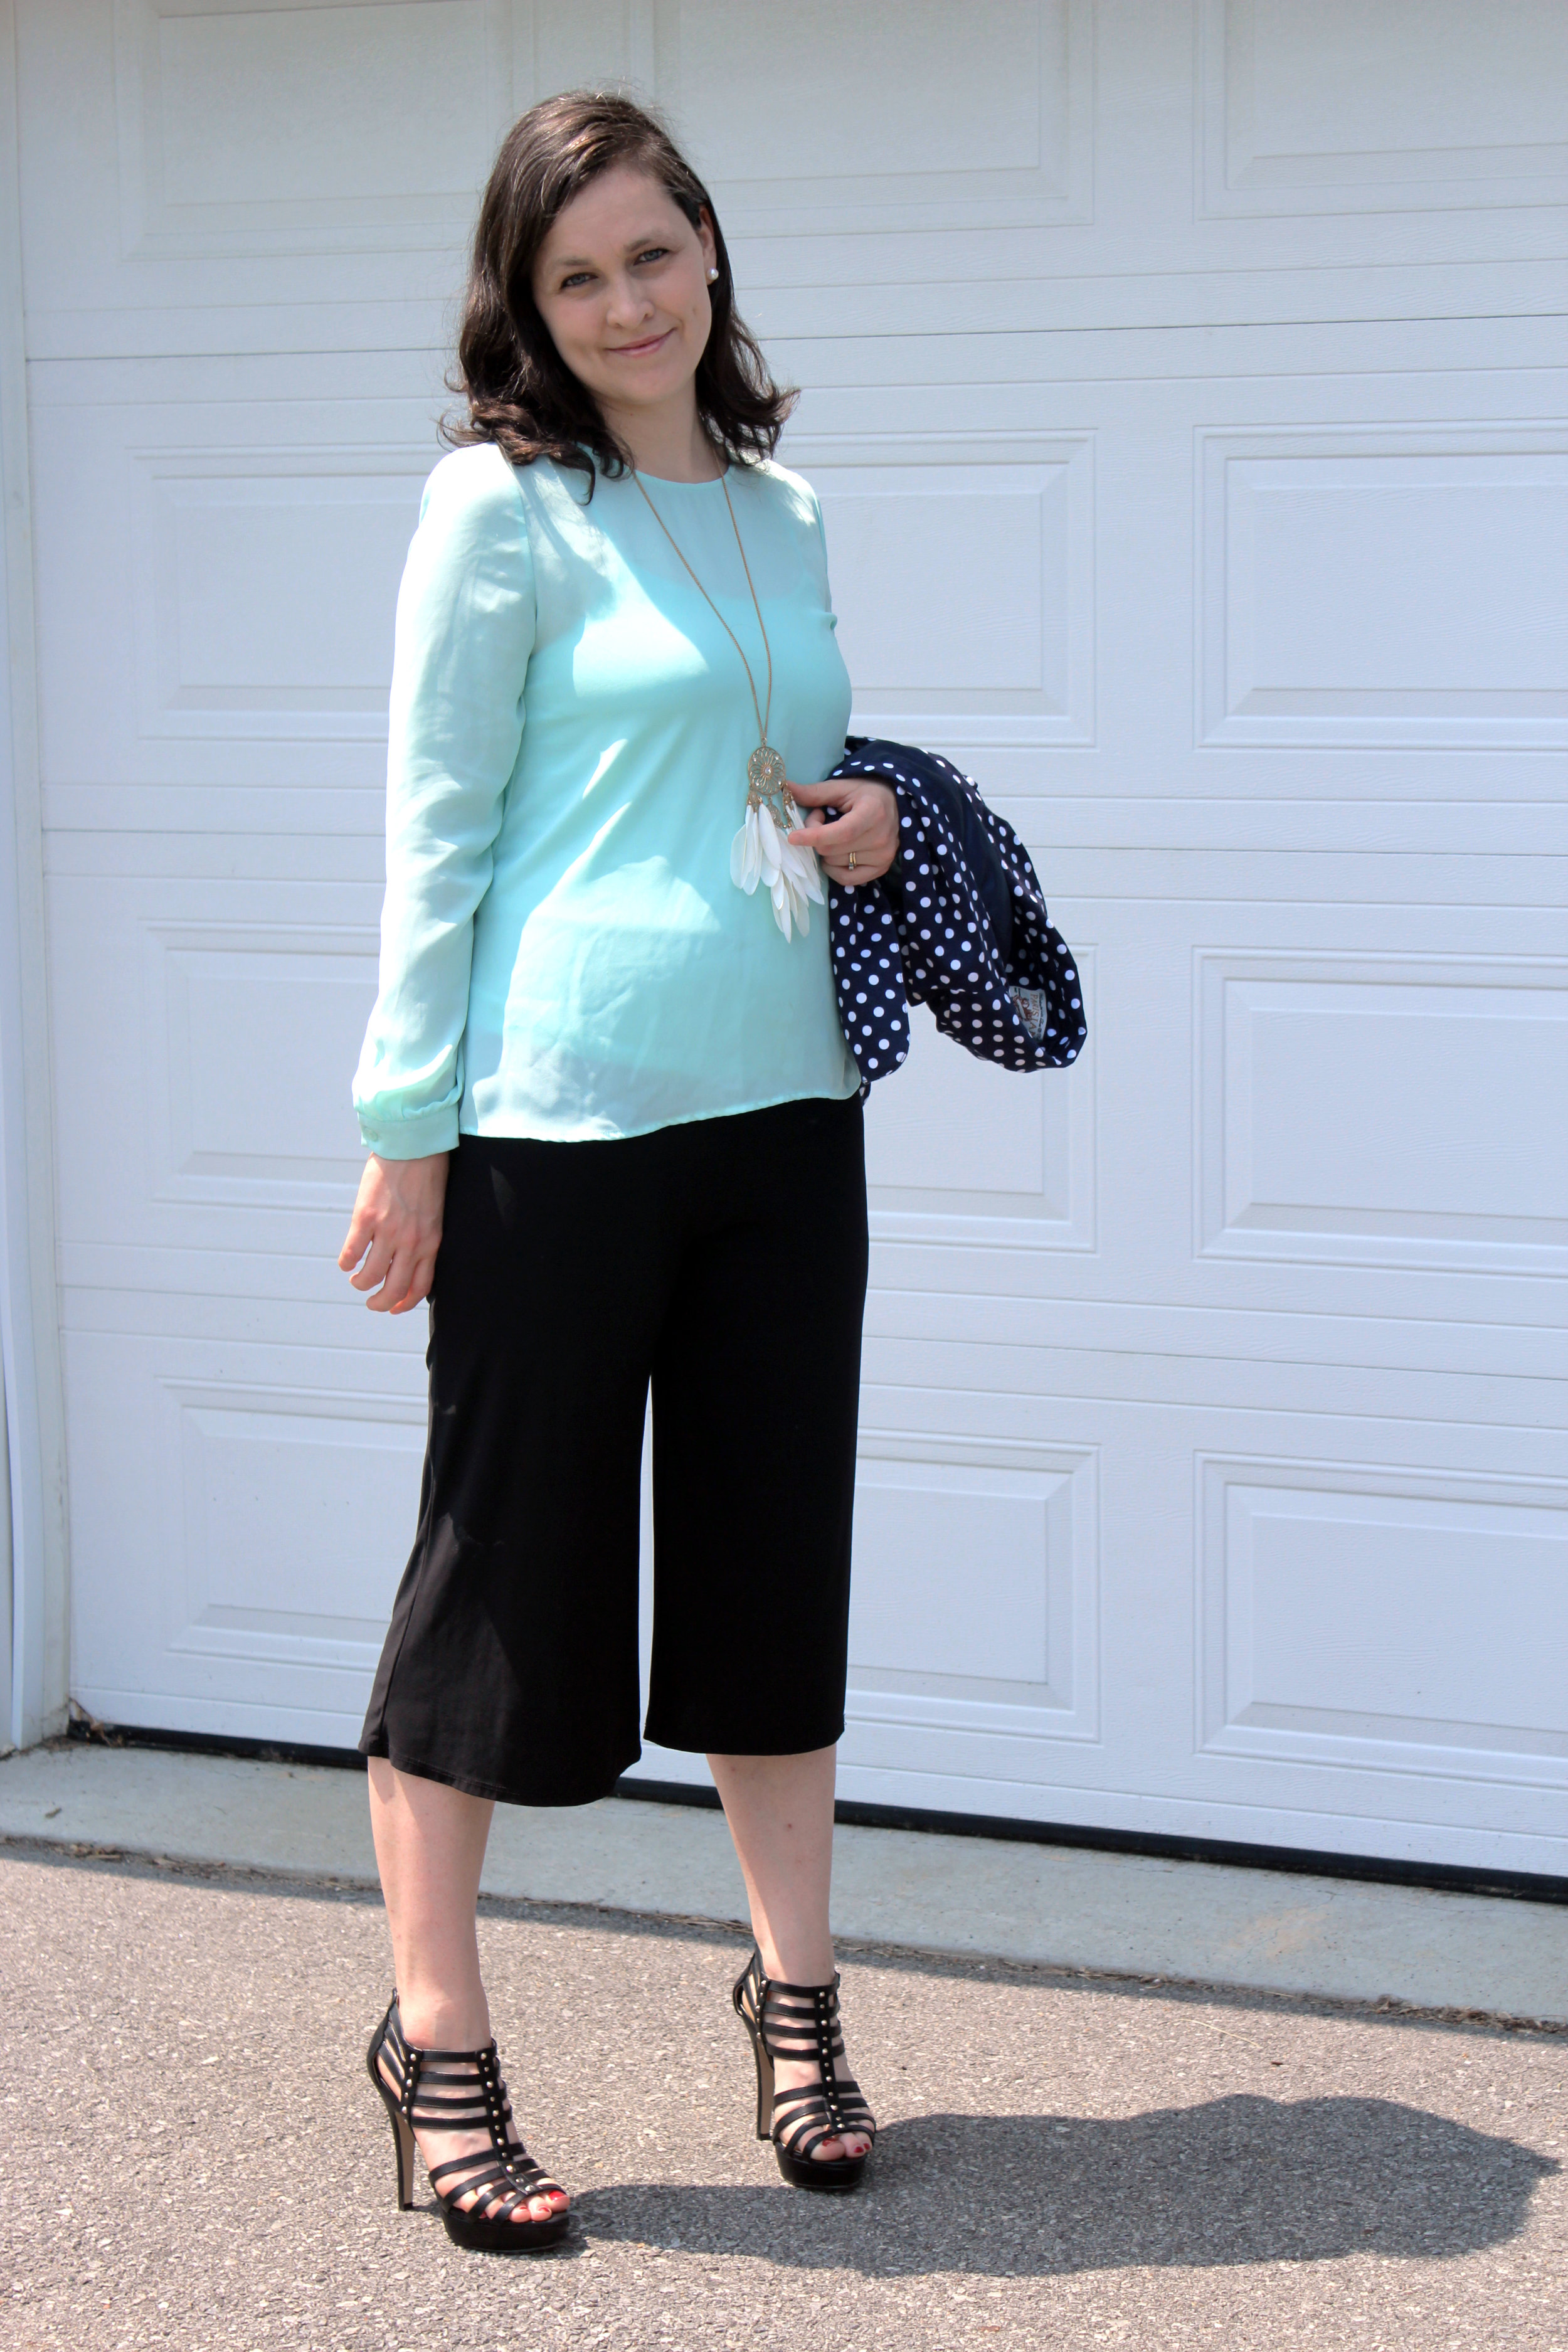 turquoise blouse navy blue polka dot jacket black pants standing up.jpg